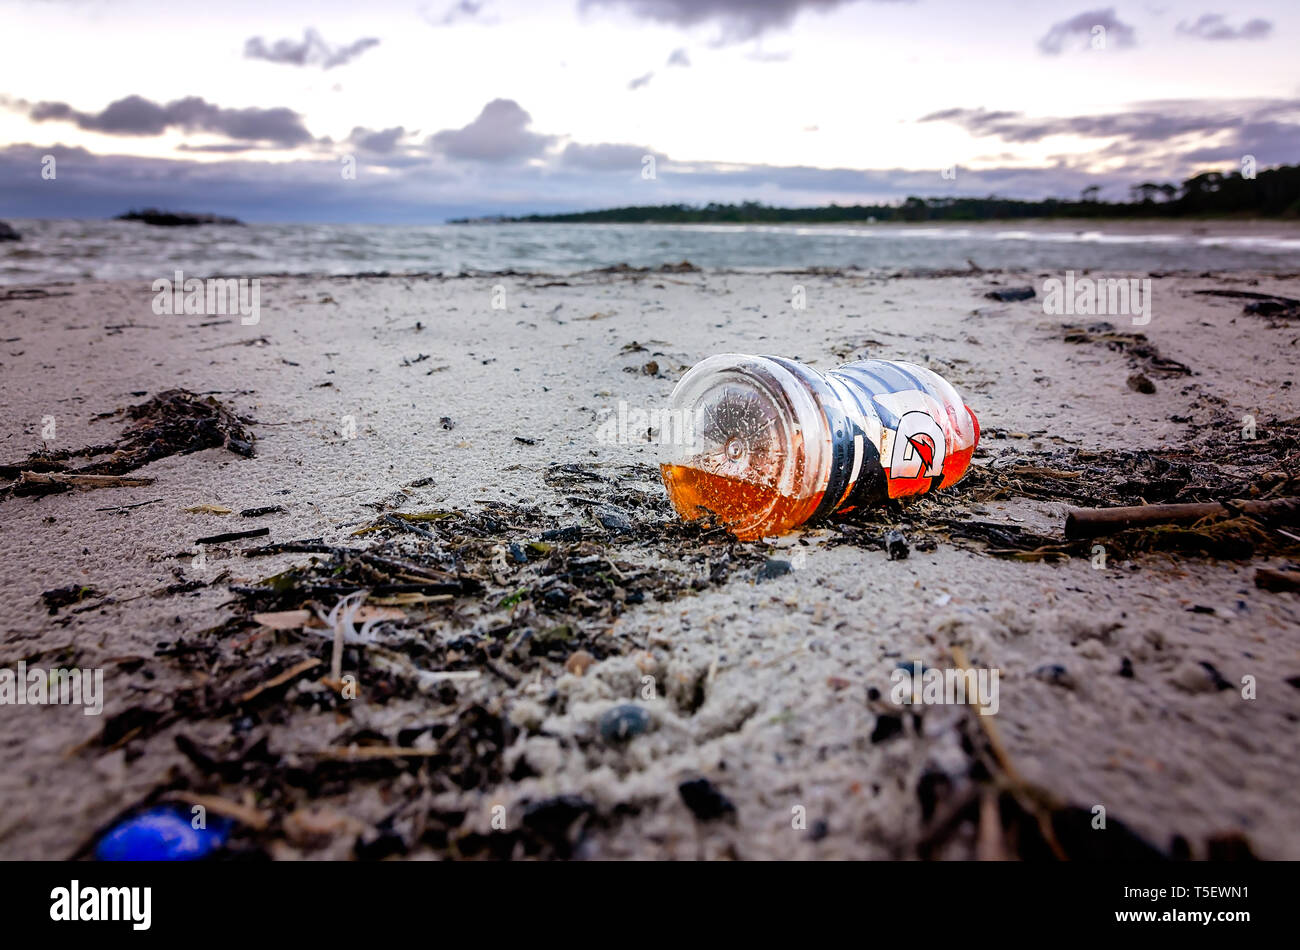 A plastic Gatorade bottle lays on the beach, April 19, 2019, in Dauphin Island, Alabama. - Stock Image